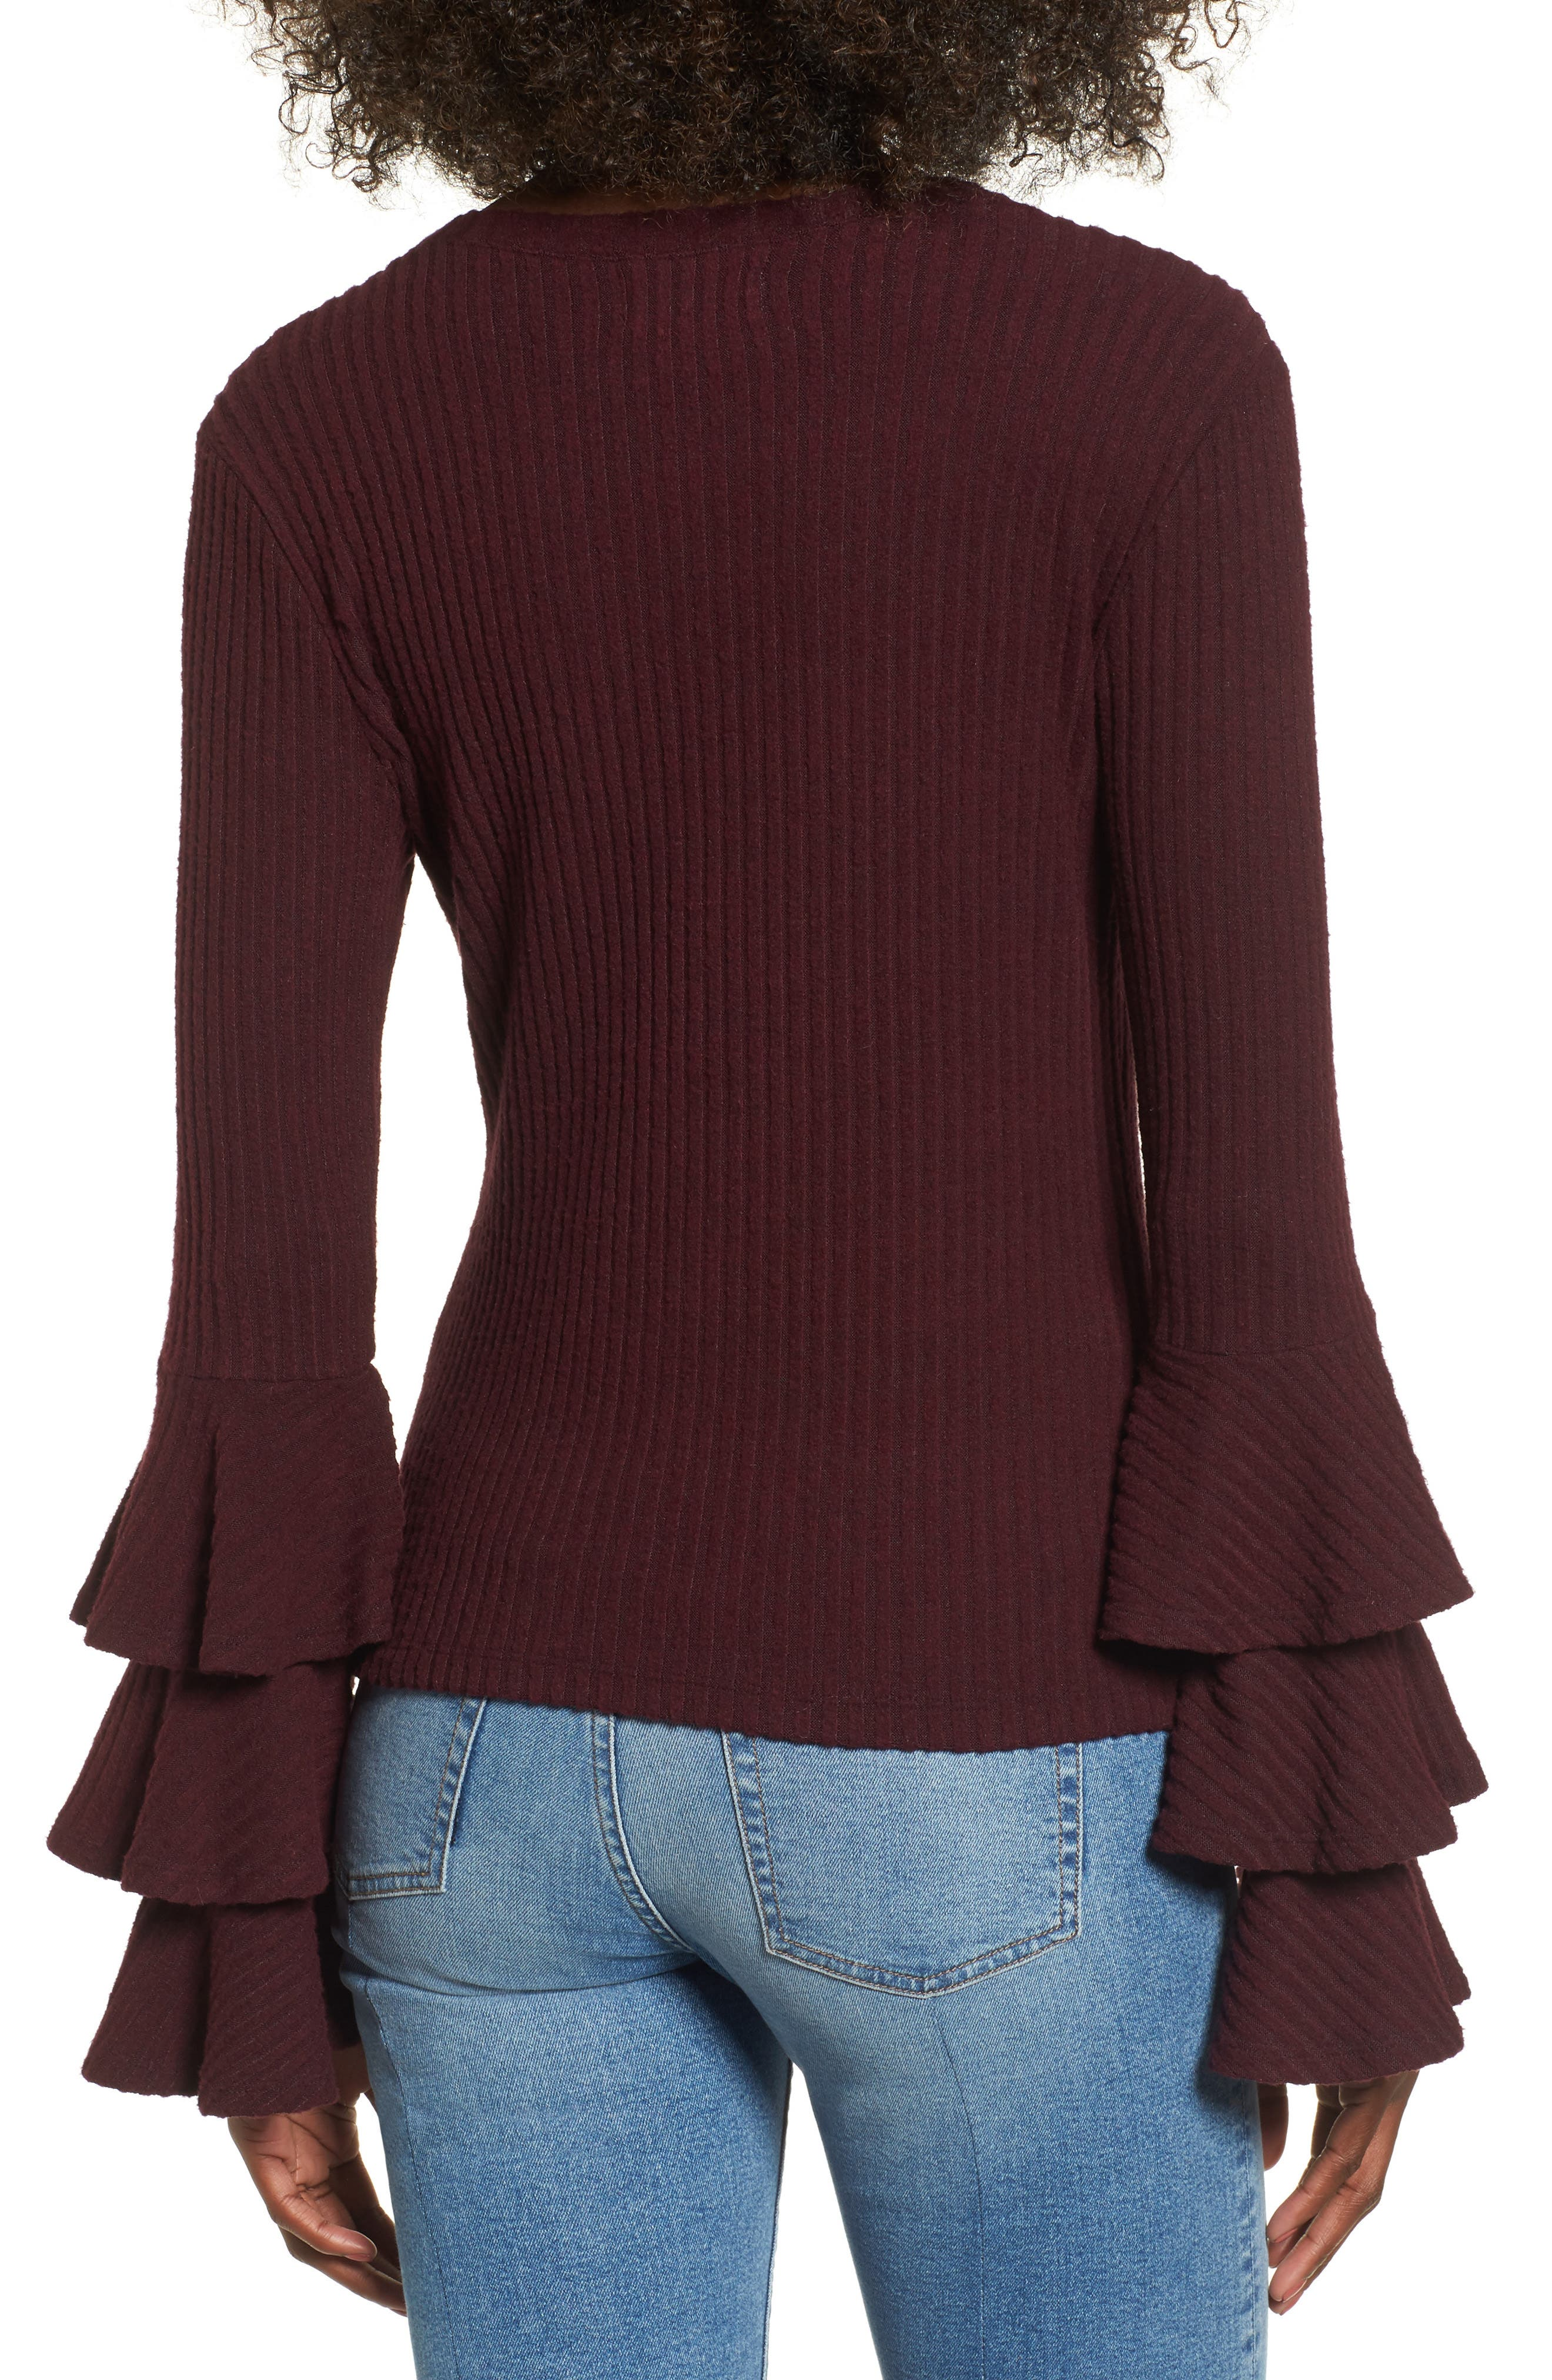 Marie Ruffle Sleeve Top,                             Alternate thumbnail 2, color,                             930